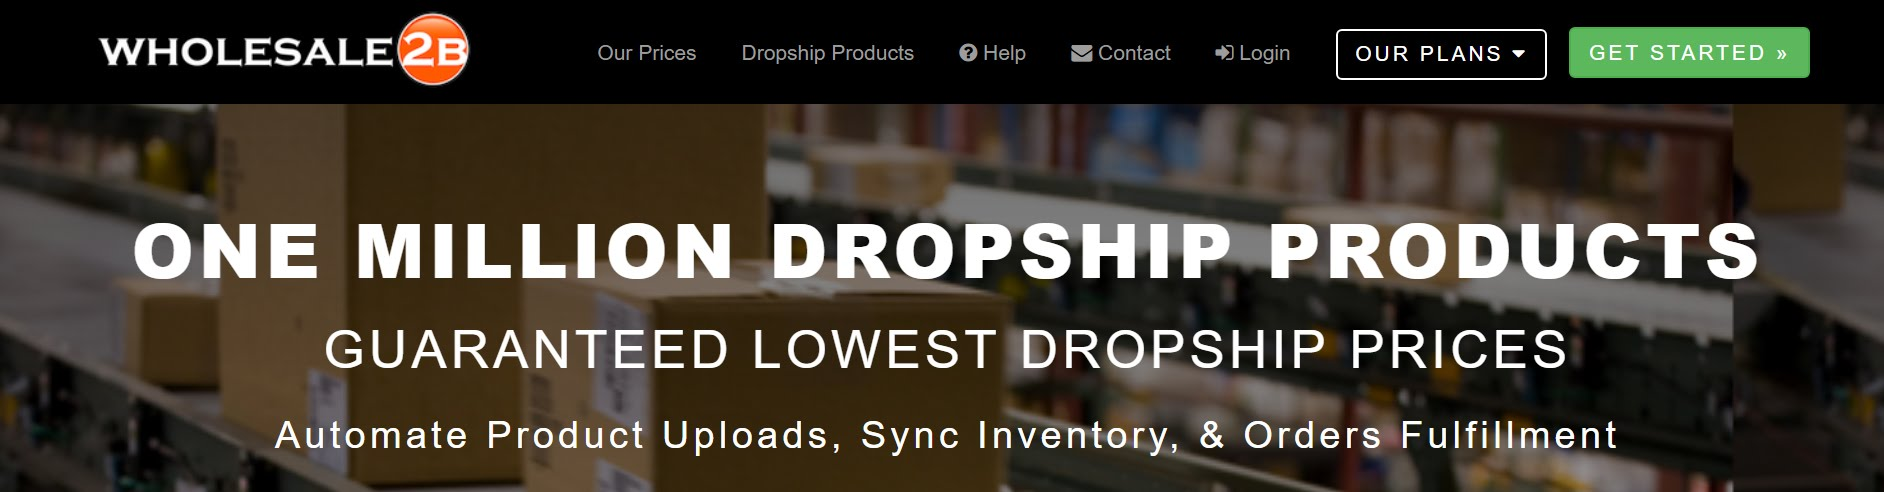 Find The Best Wholesale Dropshipping Companies & Drop Shipping